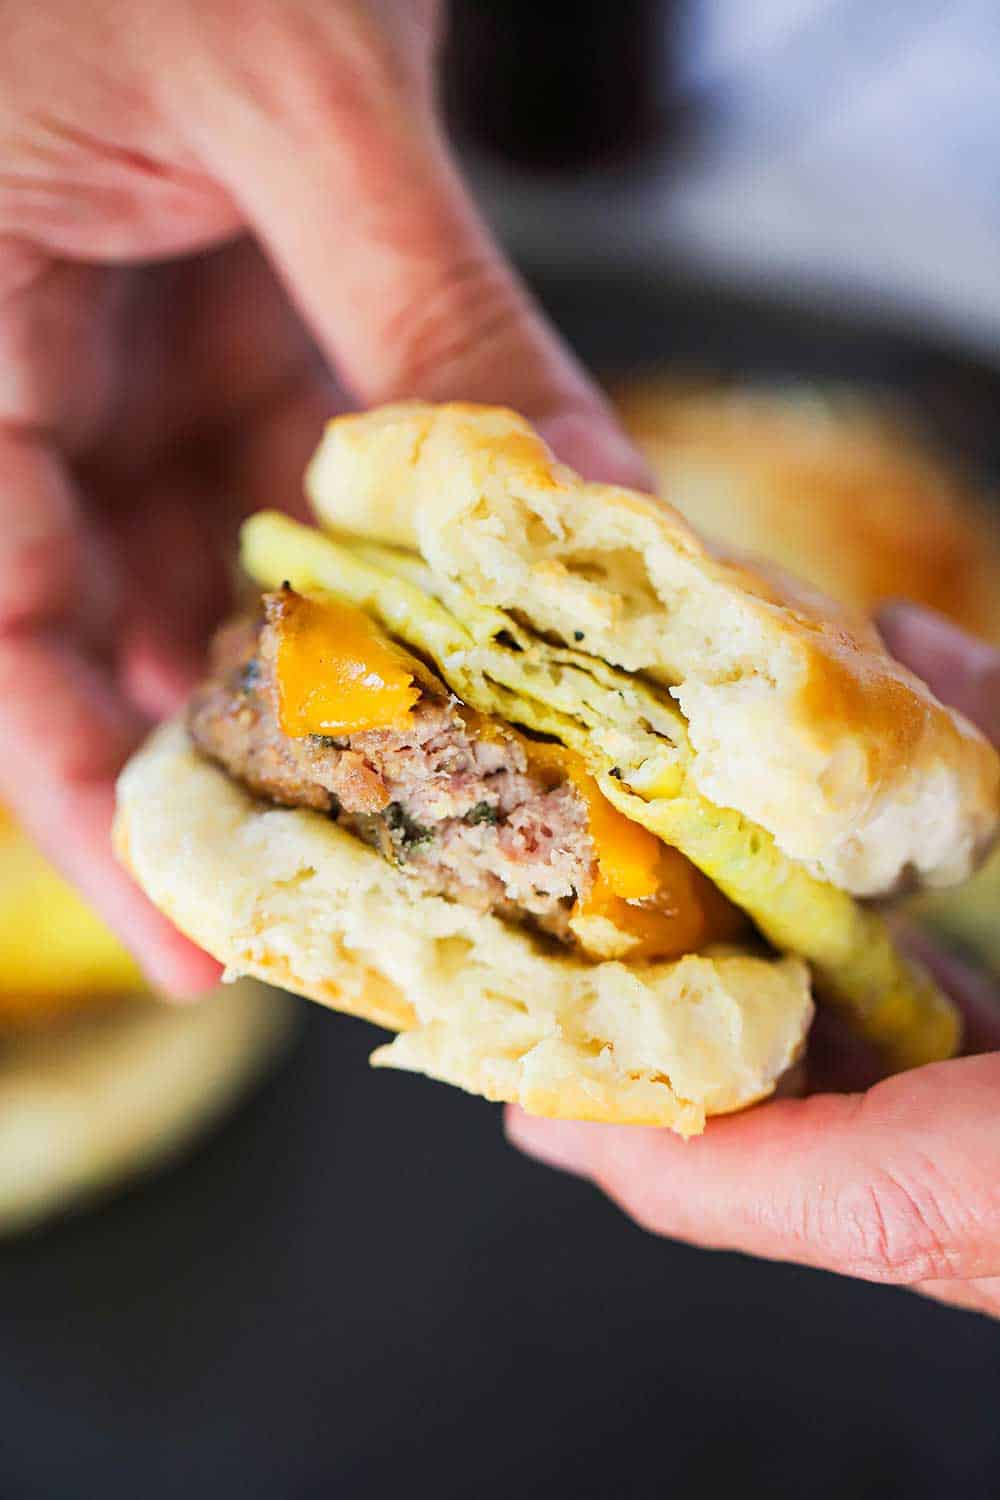 Two hands holding a sausage, egg, and cheese breakfast sandwich with a bite taken out it.